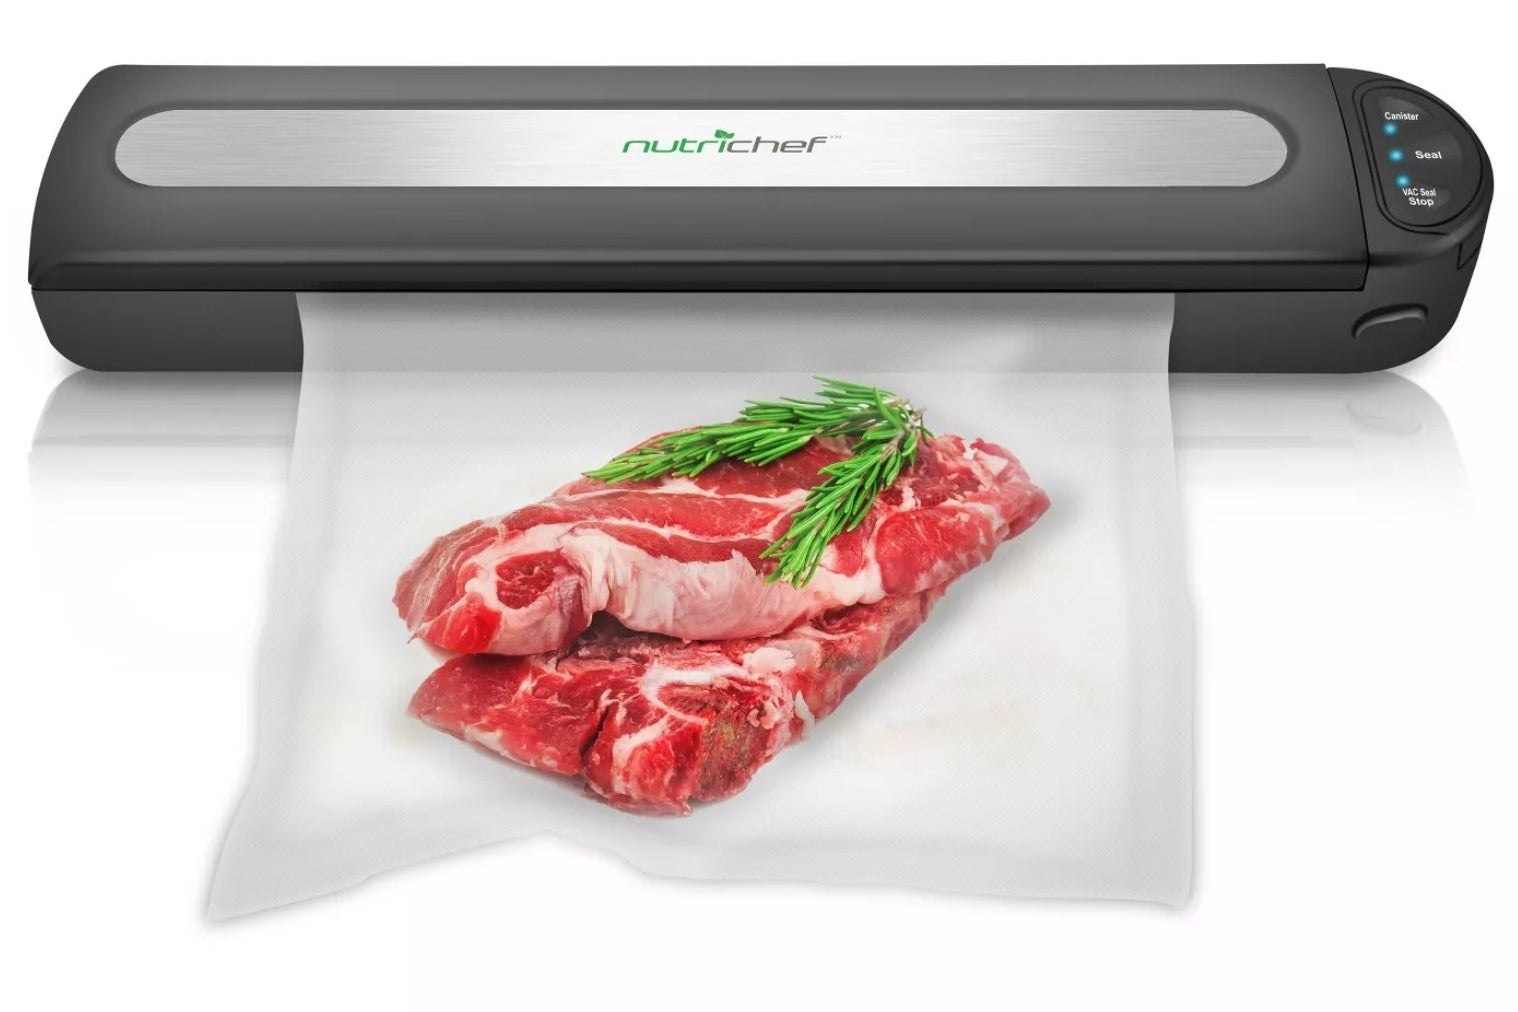 the vacuum sealer with steak and an herb in a bag being sealed